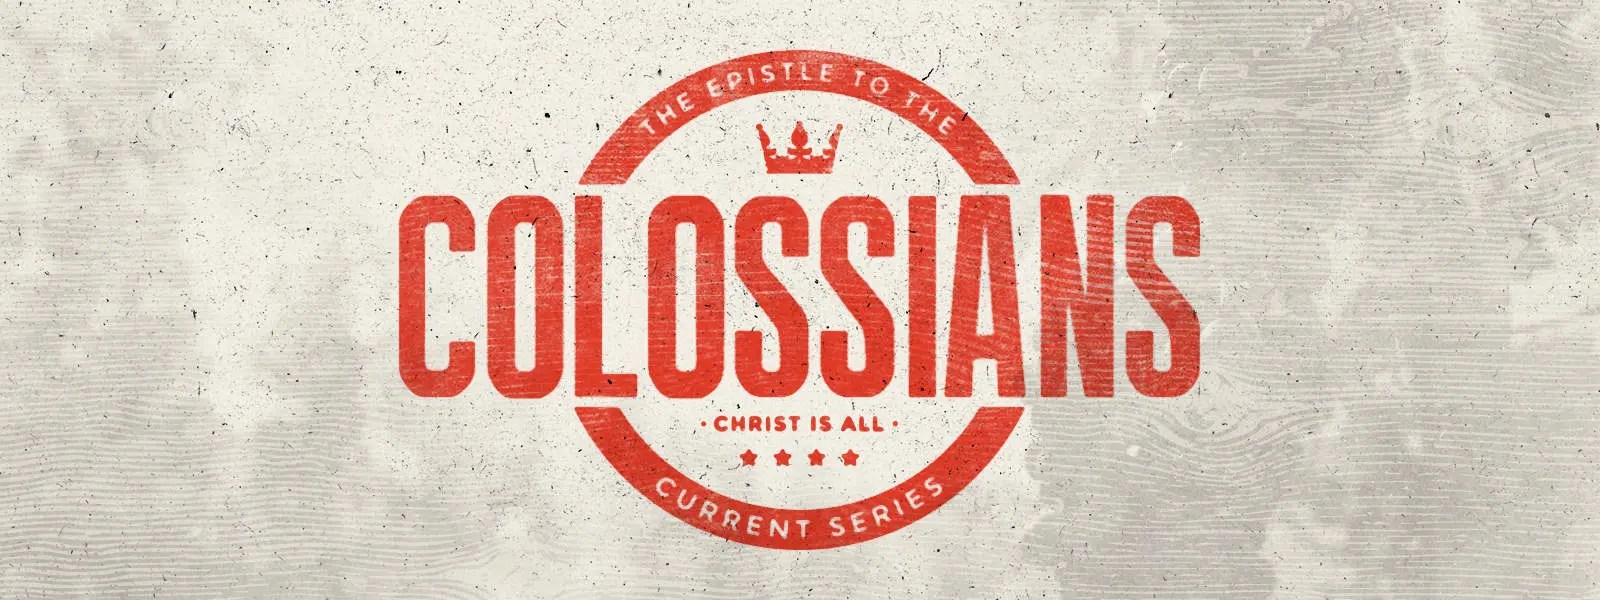 The-Book-of-Colossians-Current-Feature